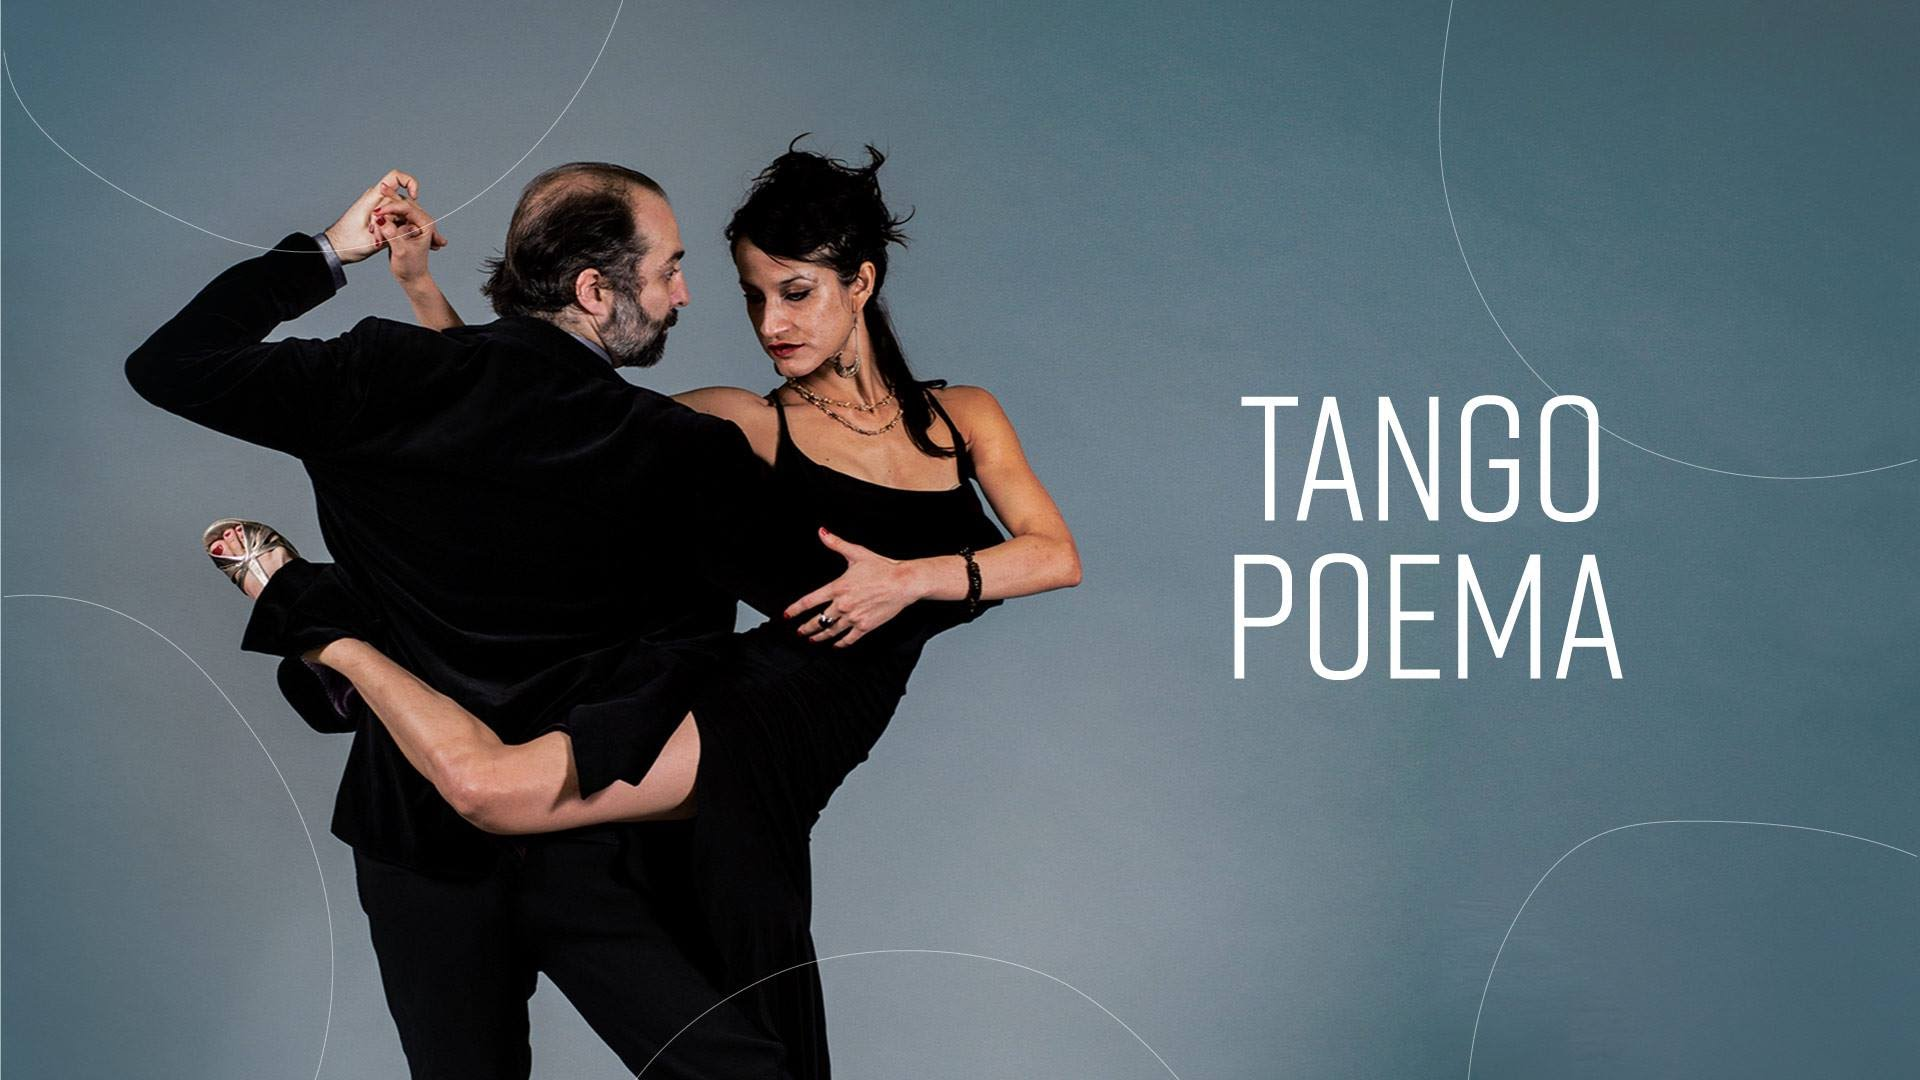 Tango Poema Giant Dwarf tango sydney sotango pablitos nick jones diana cruz shows dancing